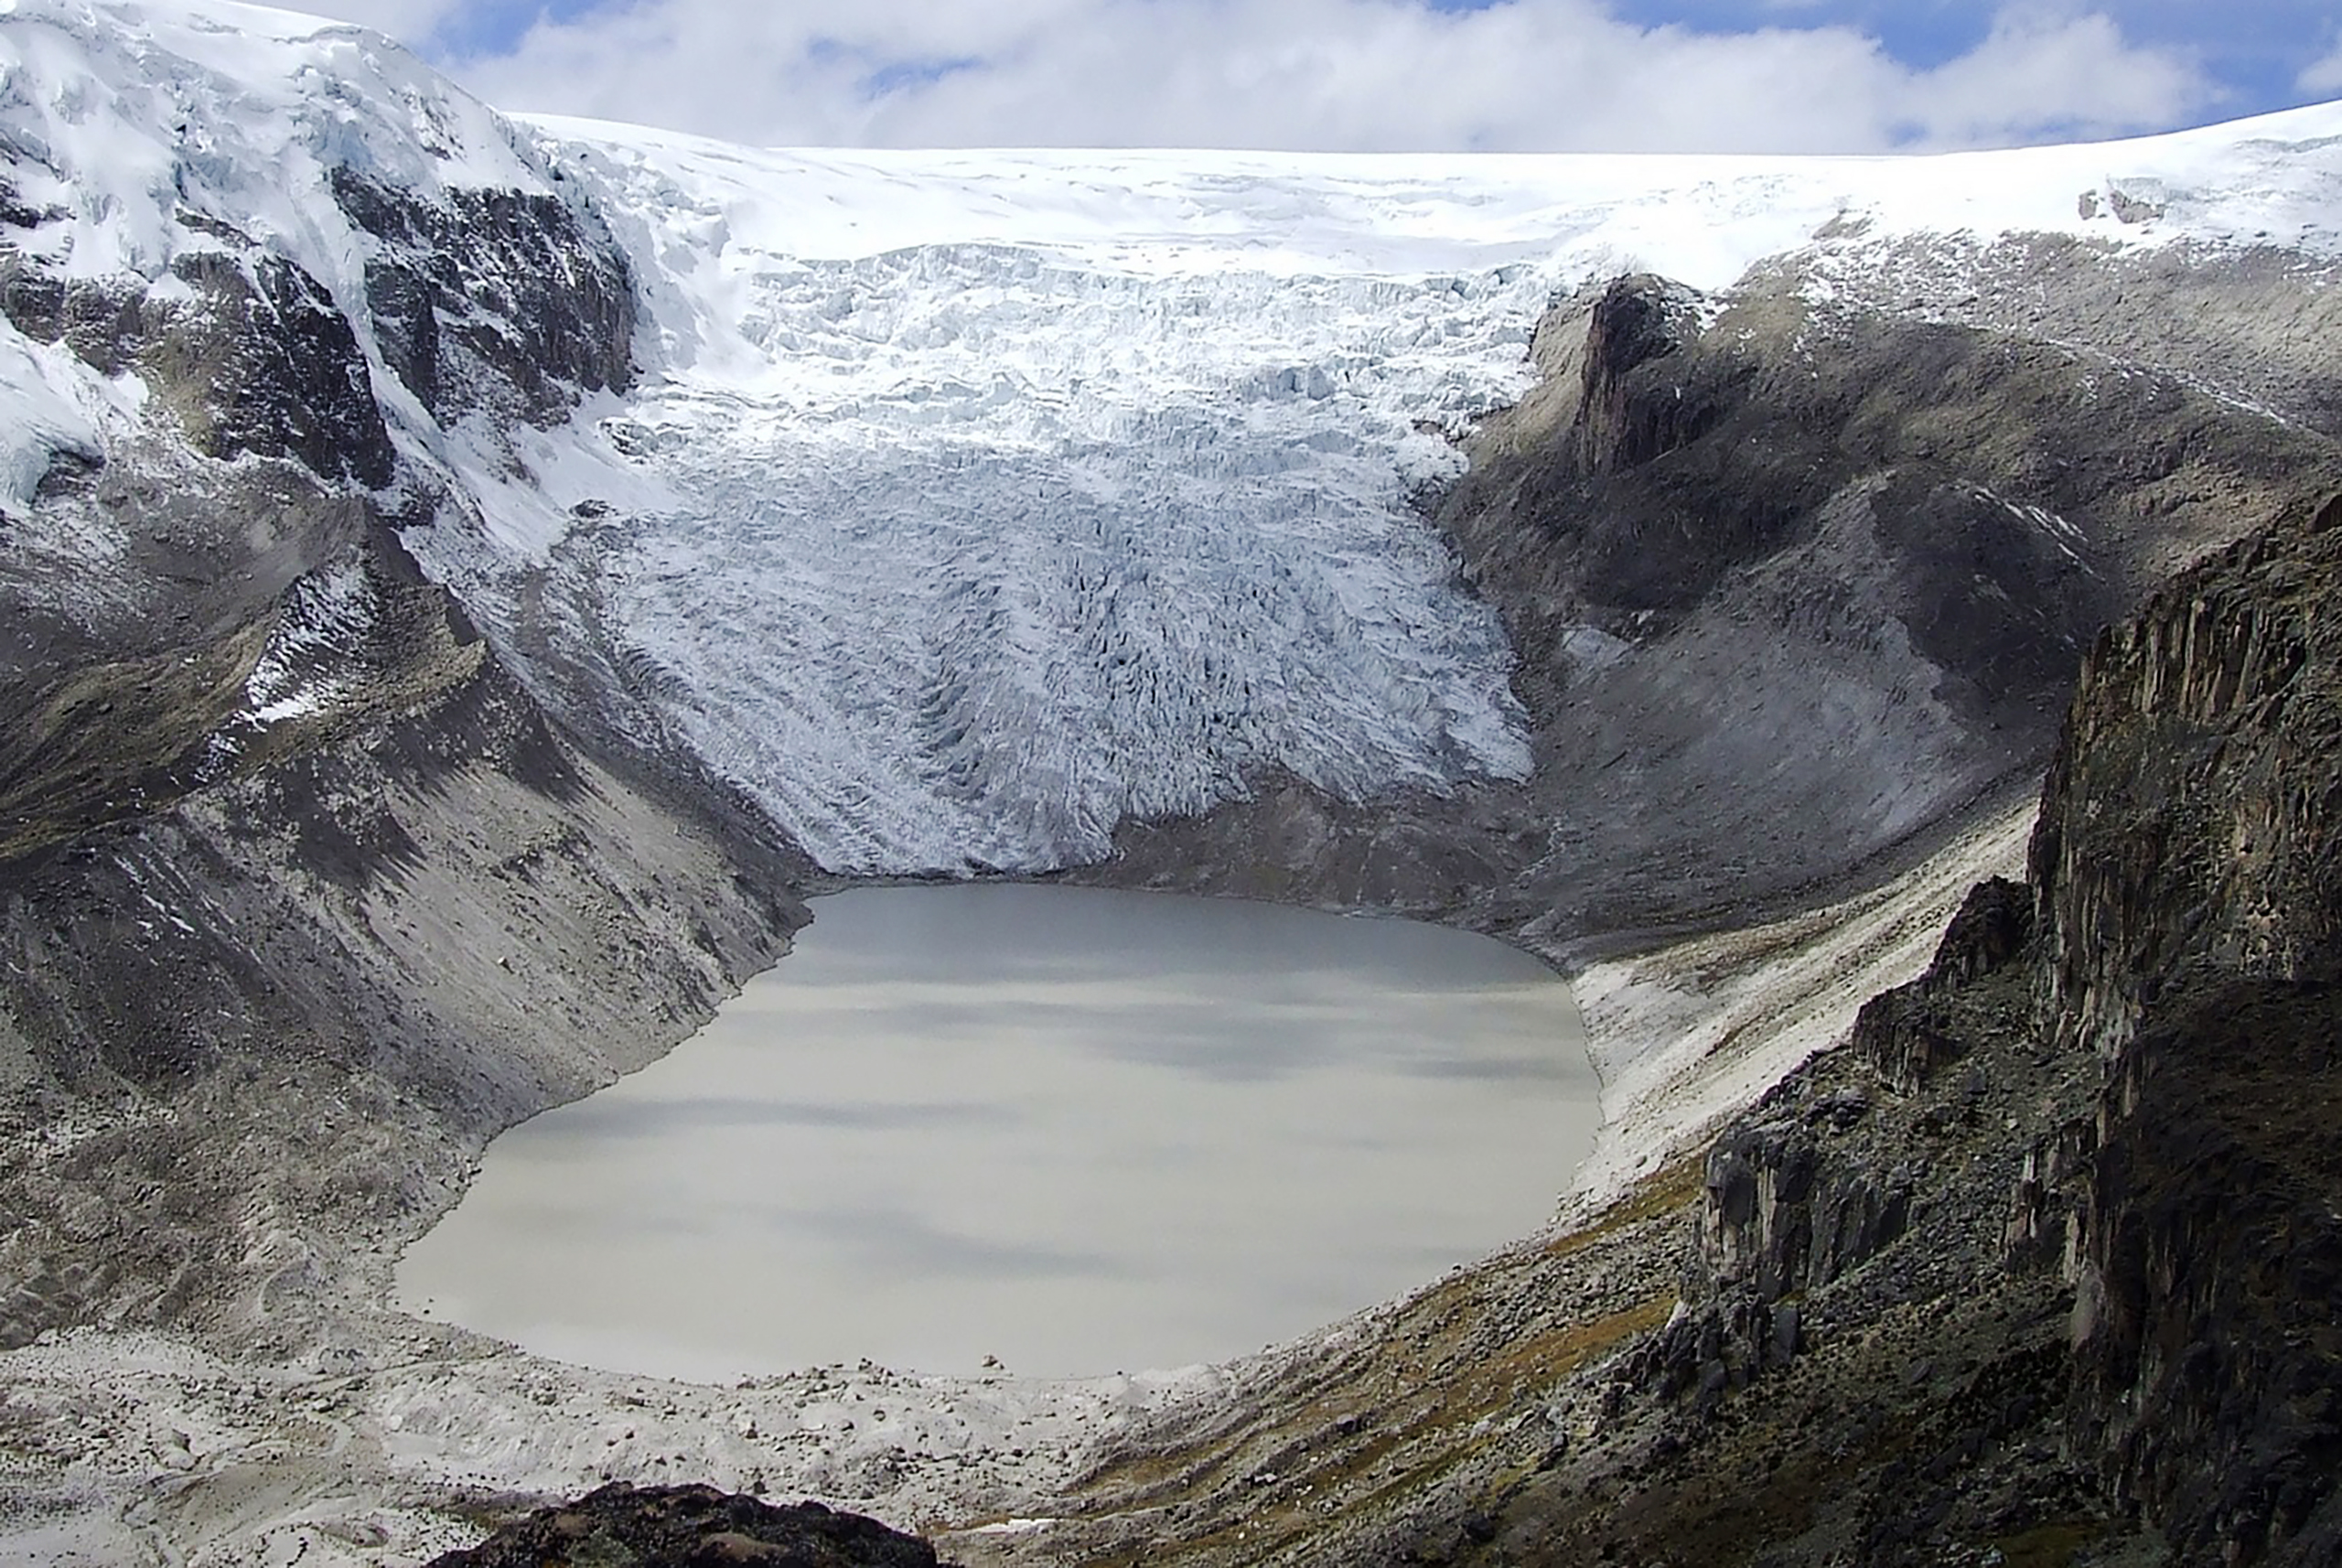 NASA images show Qori Kalis (above), a glacier that is part of the world's largest tropical ice cap, on a plateau 18,670 ft. (5,691 m) high in the Andes Mountains of Peru. In 1978, the glacier was still expanding. But not anymore. By 2011, it had retreated far enough to leave a lake 86 acres (35 hectares) in area and 200 ft. (60 m) deep. Human-influenced climate change has also contributed to the retreat of Muir and Riggs Glaciers (next pages), in Alaska.